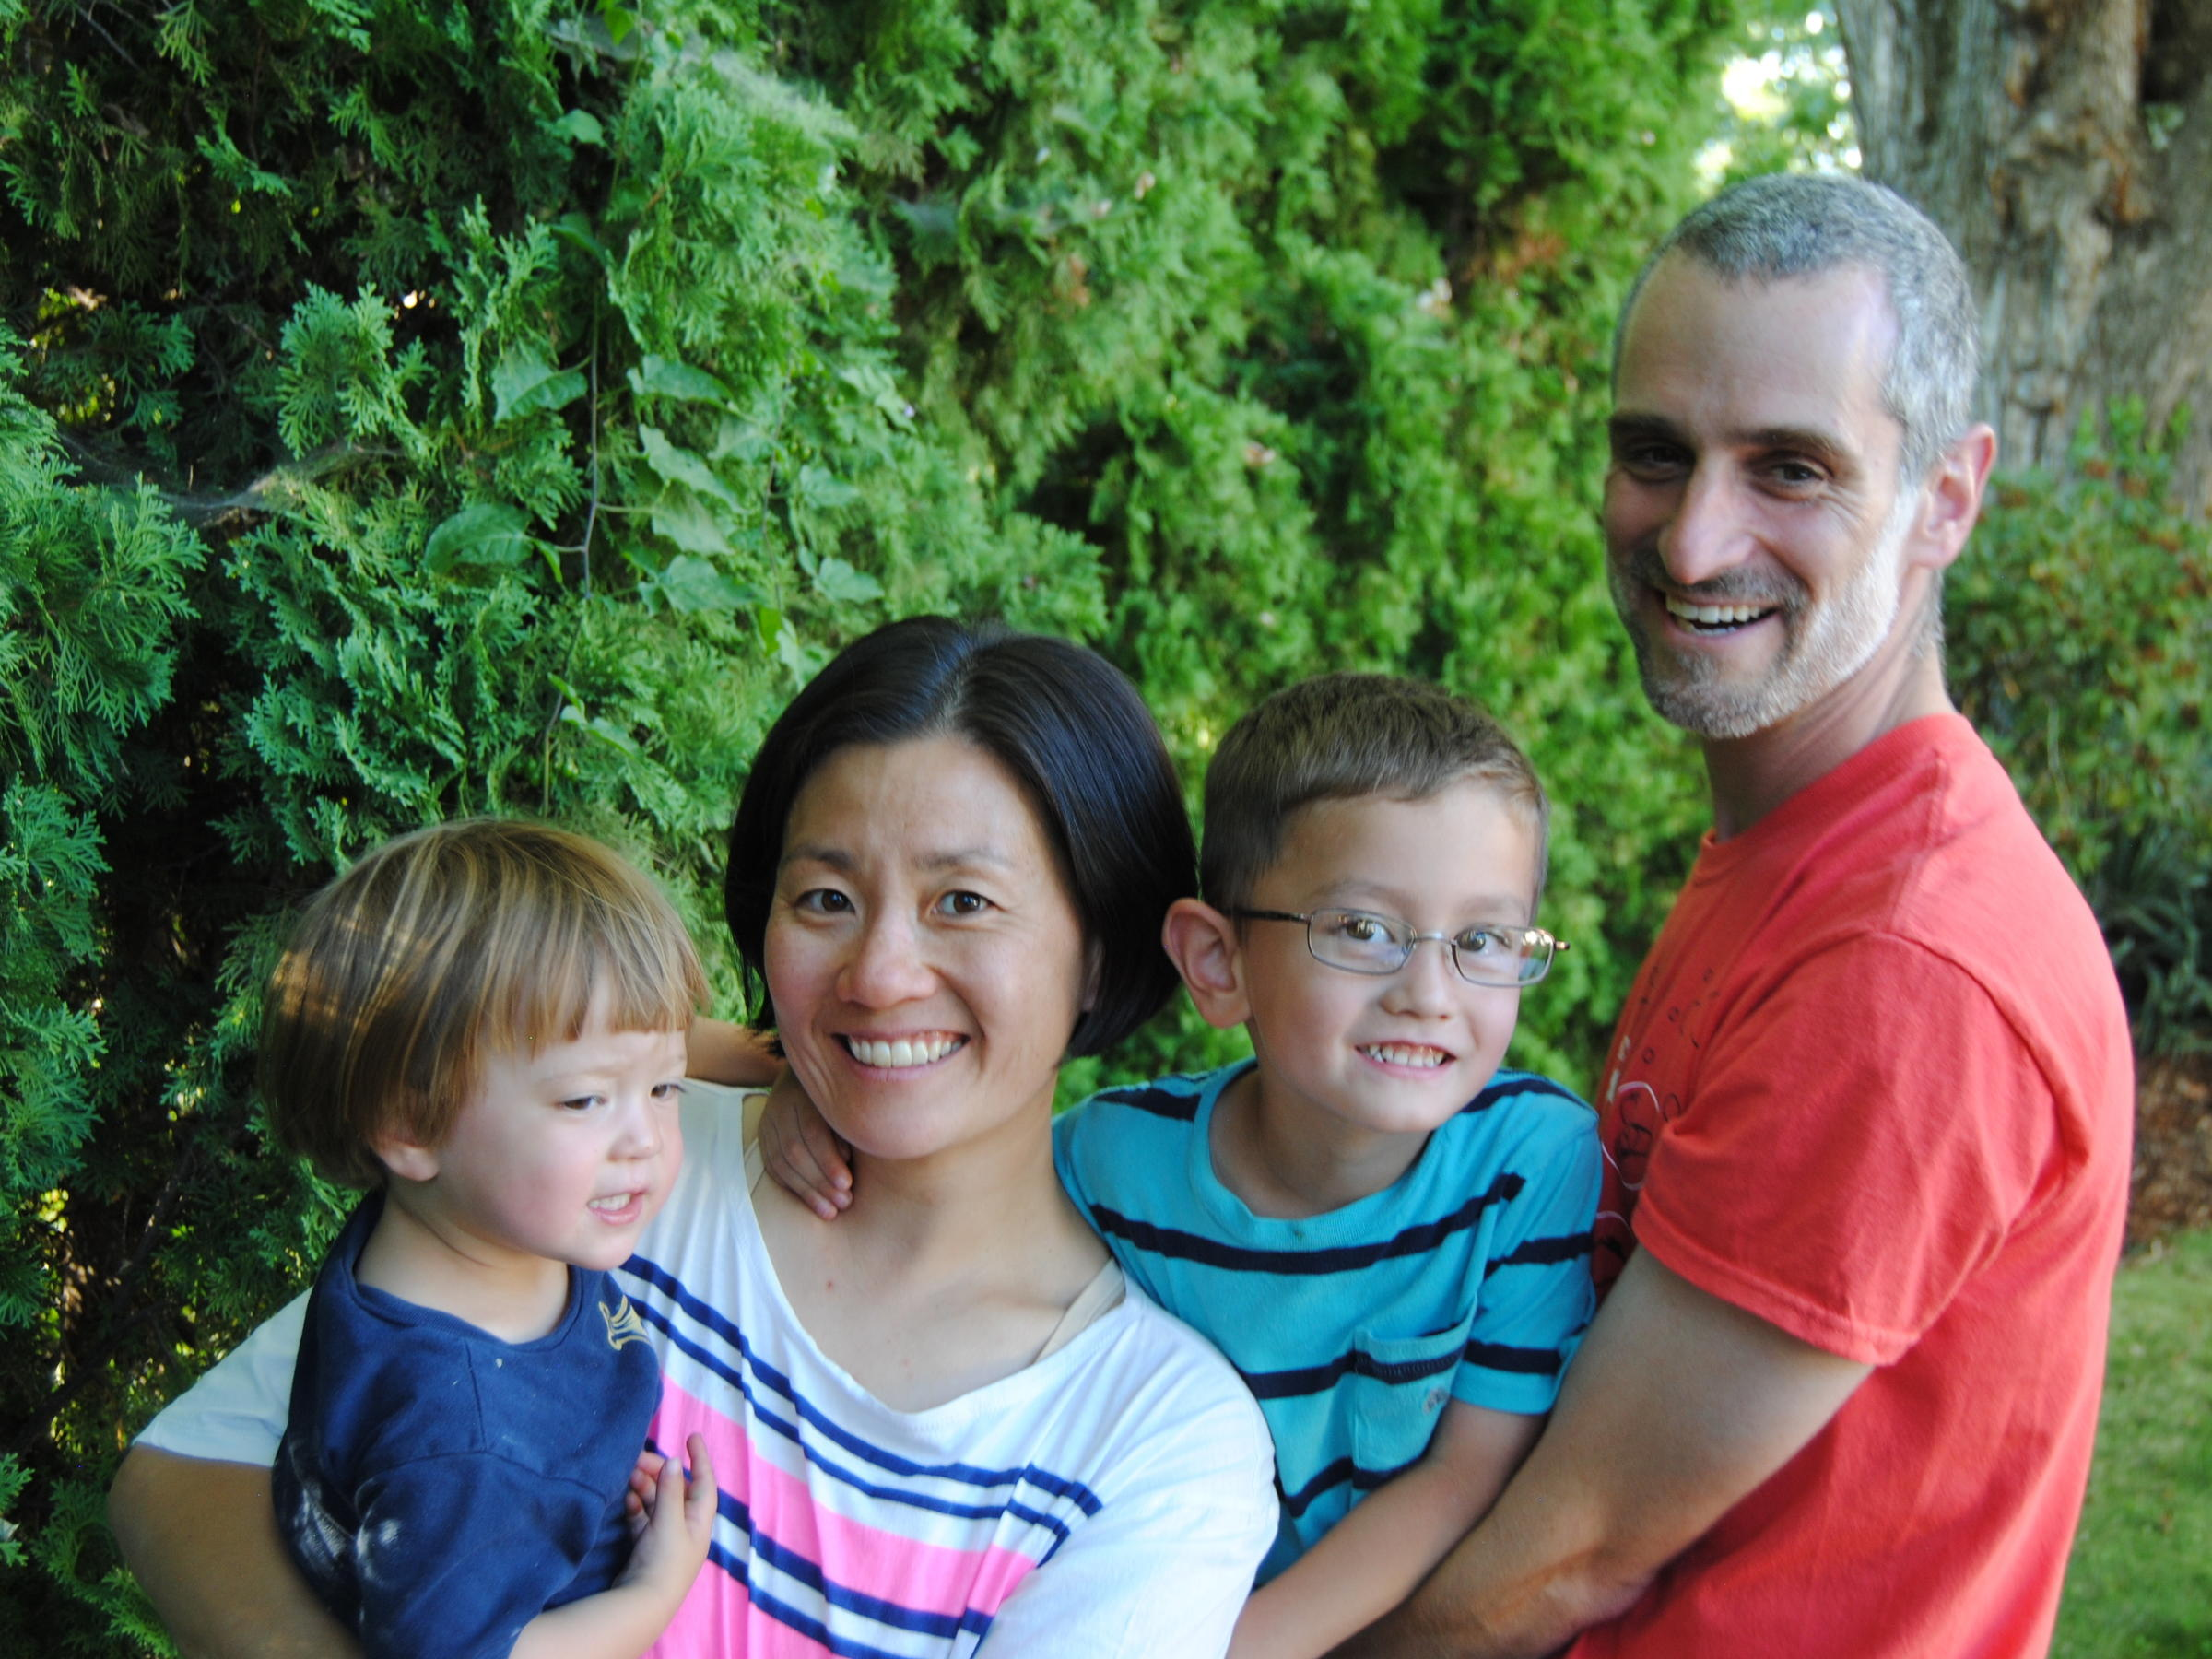 Sociologists Helen Kim And Noah Leavitt With Their Children Talia And Ari